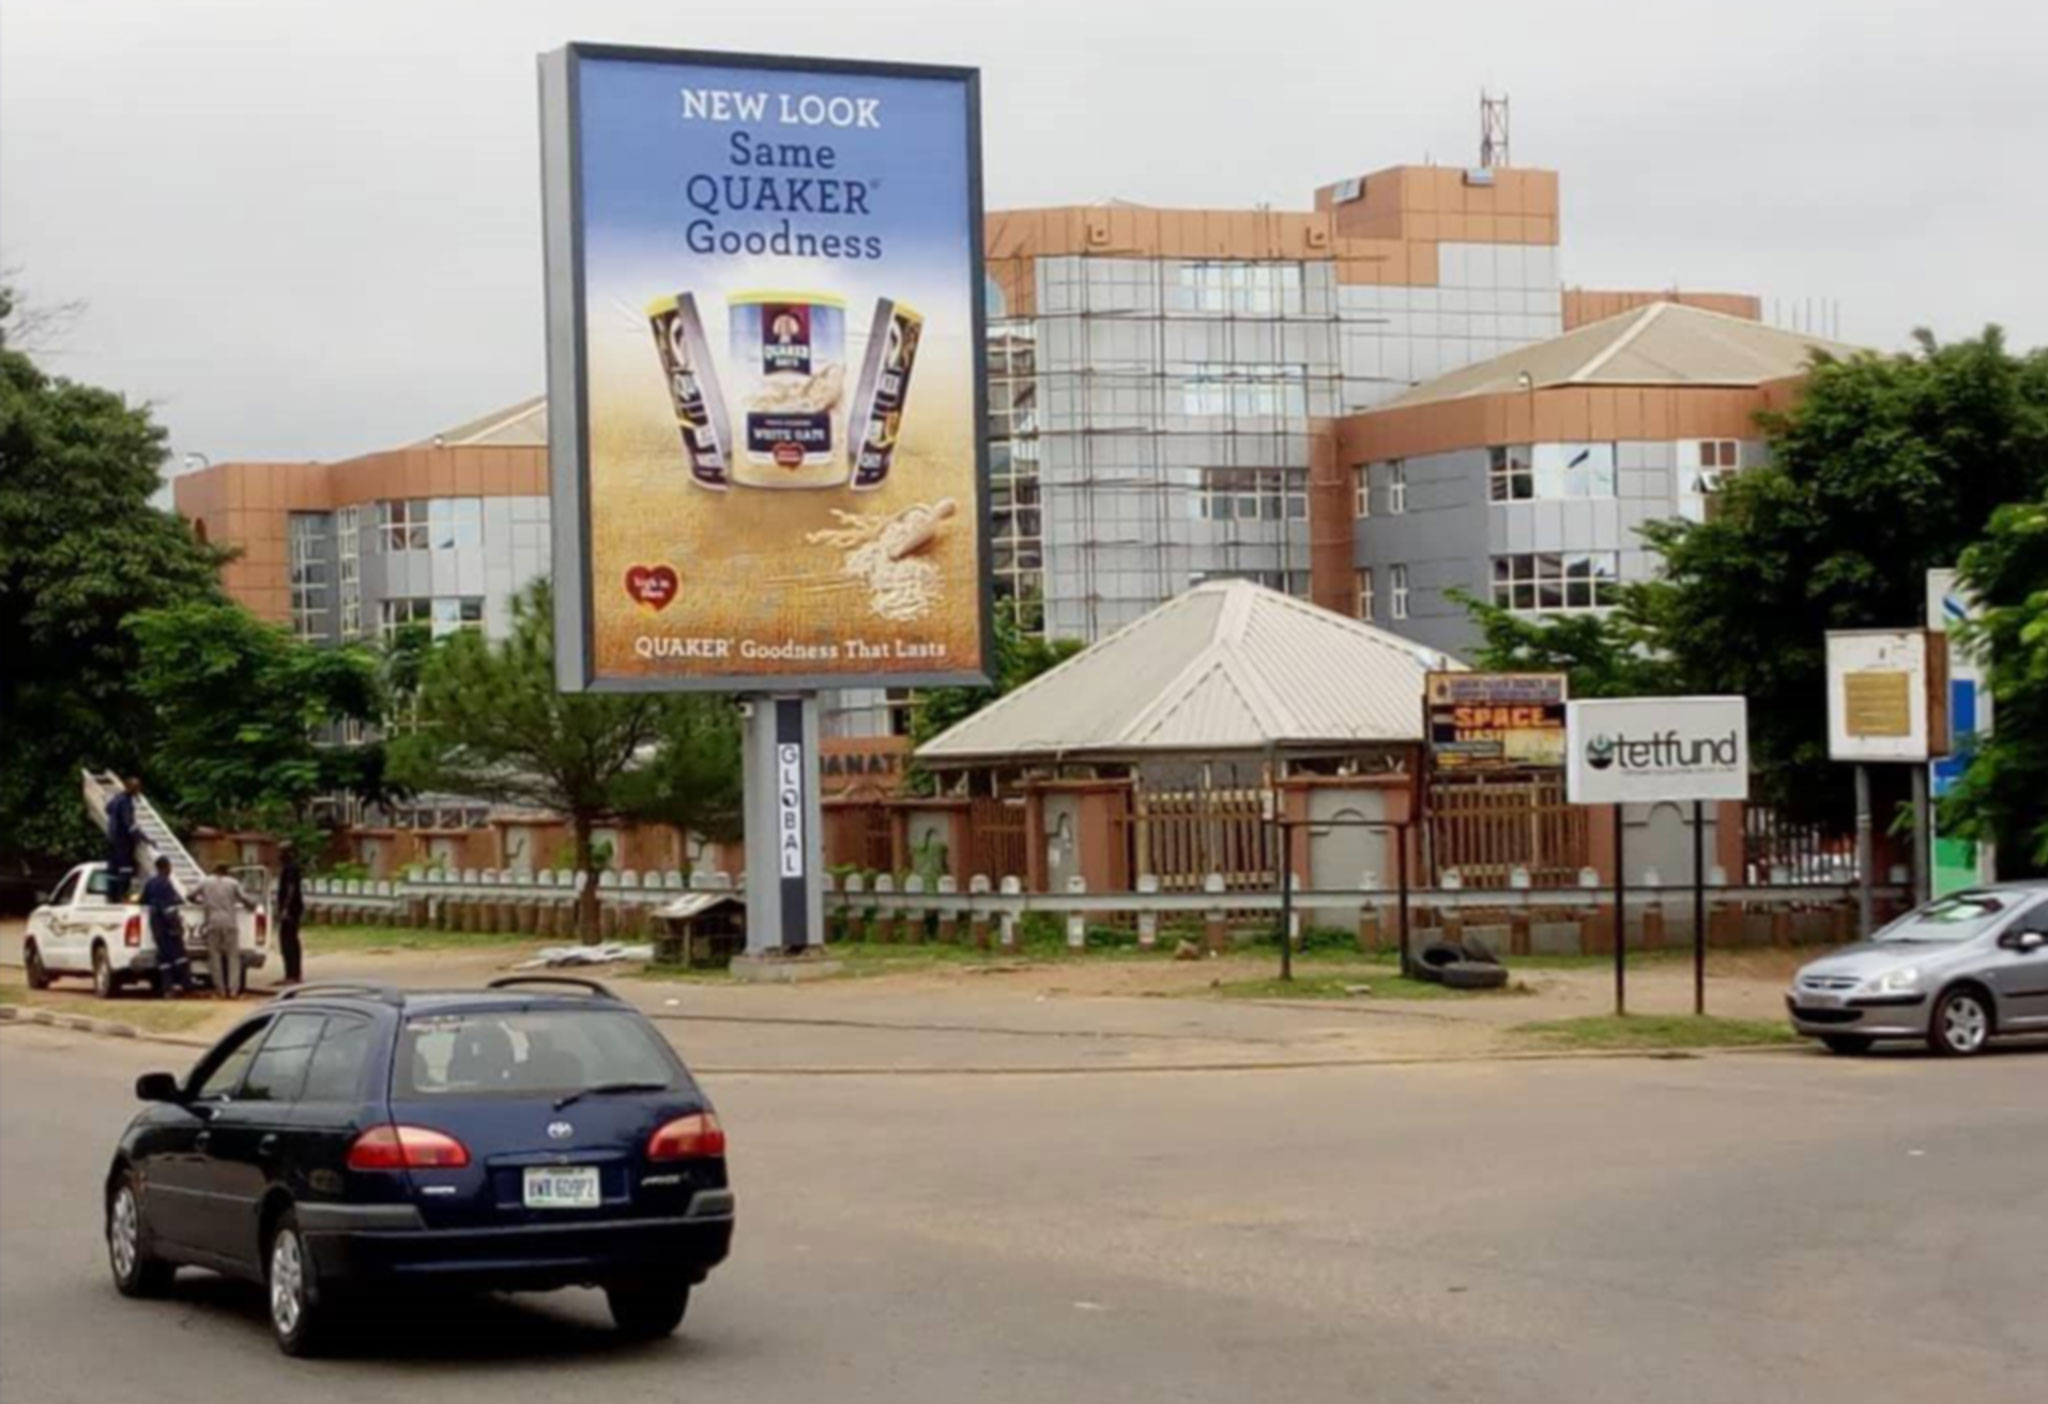 Global OOH Media ramps up investment in Nigeria with upgrade to its Abuja roadside network